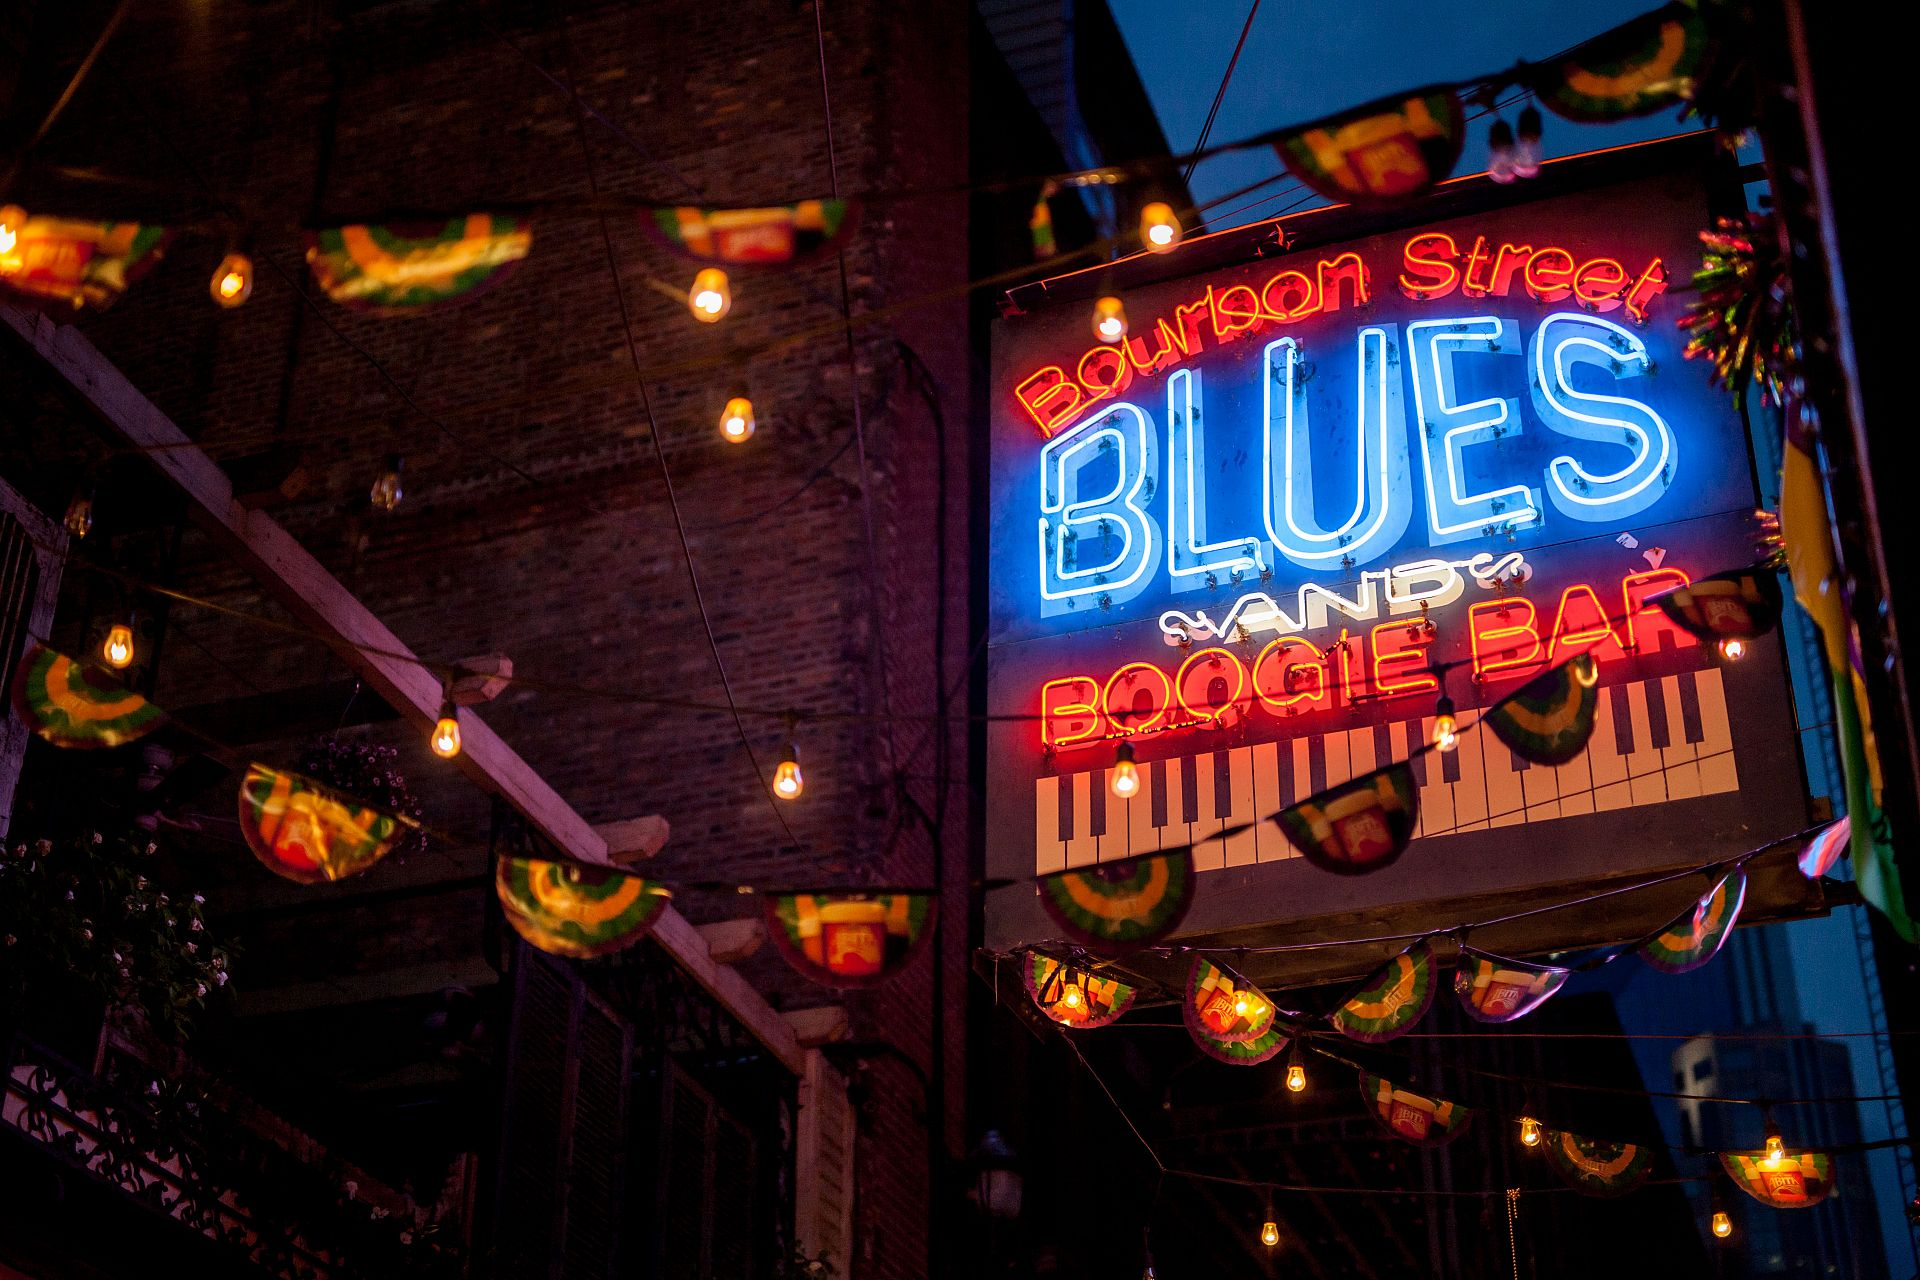 Bourbon Street Blues and Boogie Bar Sign in Printers Alley